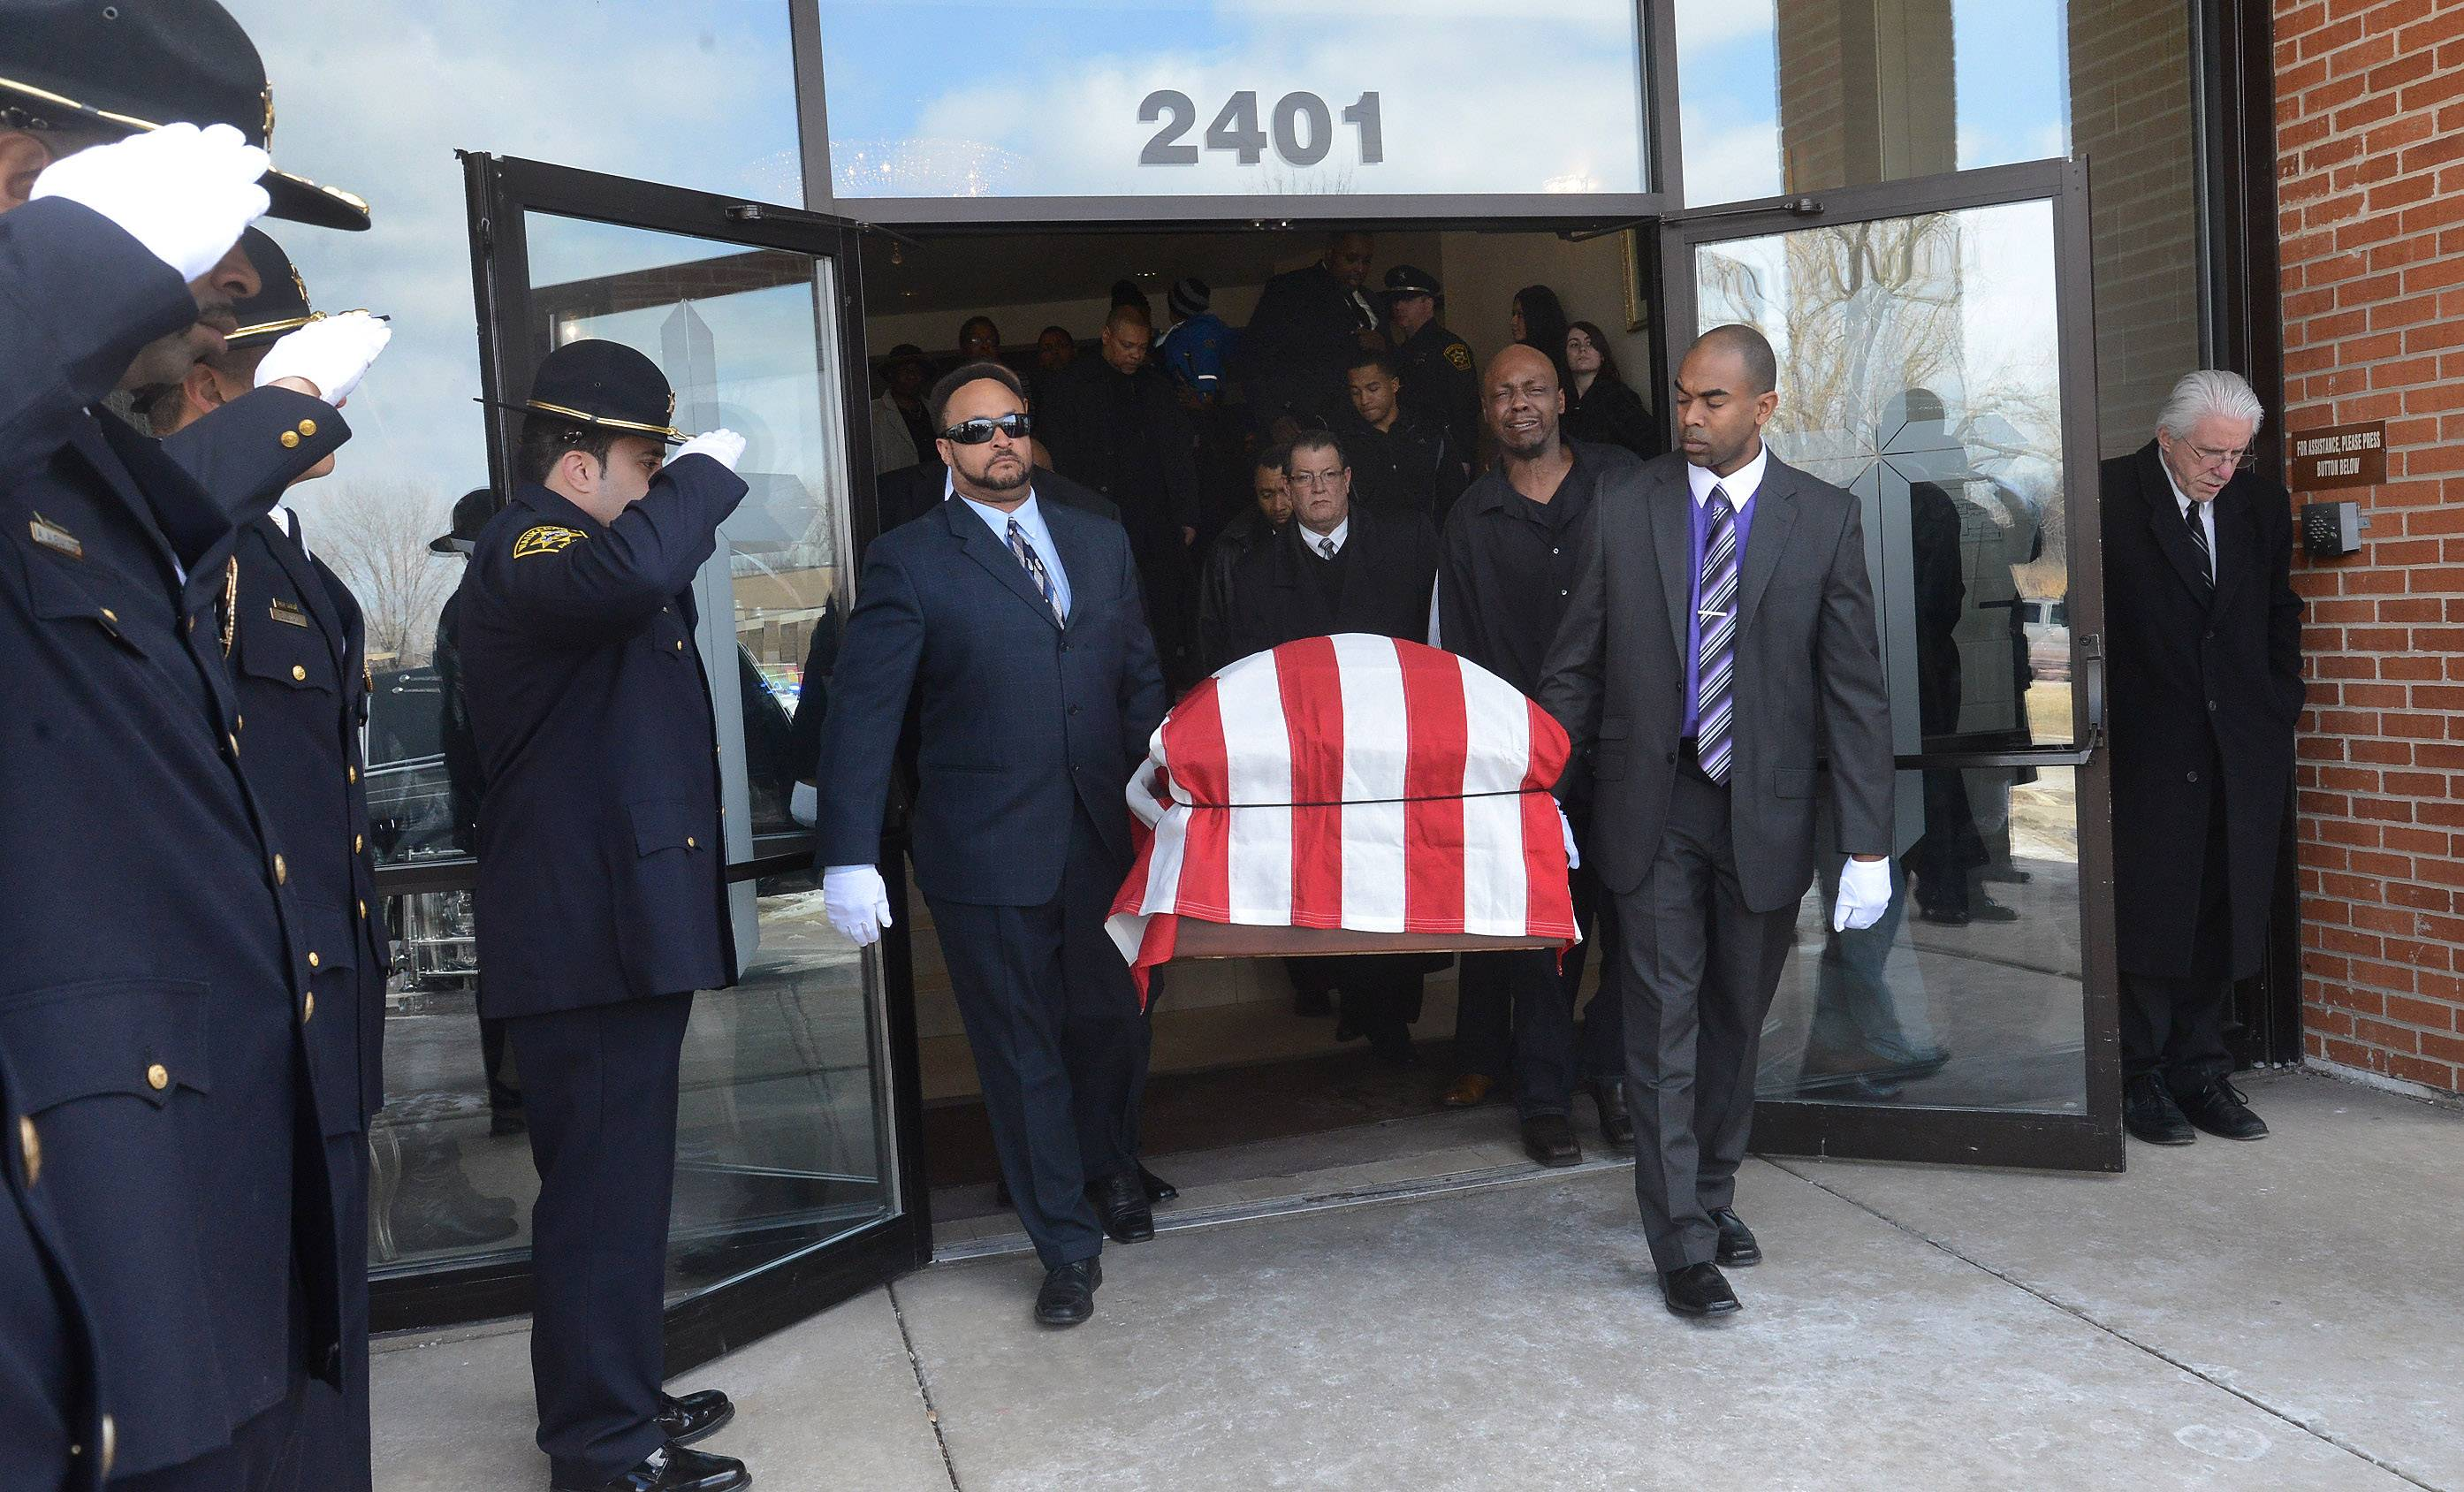 Pallbearers Tuesday afternoon carry the casket containing Artis Yancey, former Waukegan police chief and Lake County coroner, from Mt. Sinai Institutional Baptist Church in North Chicago.